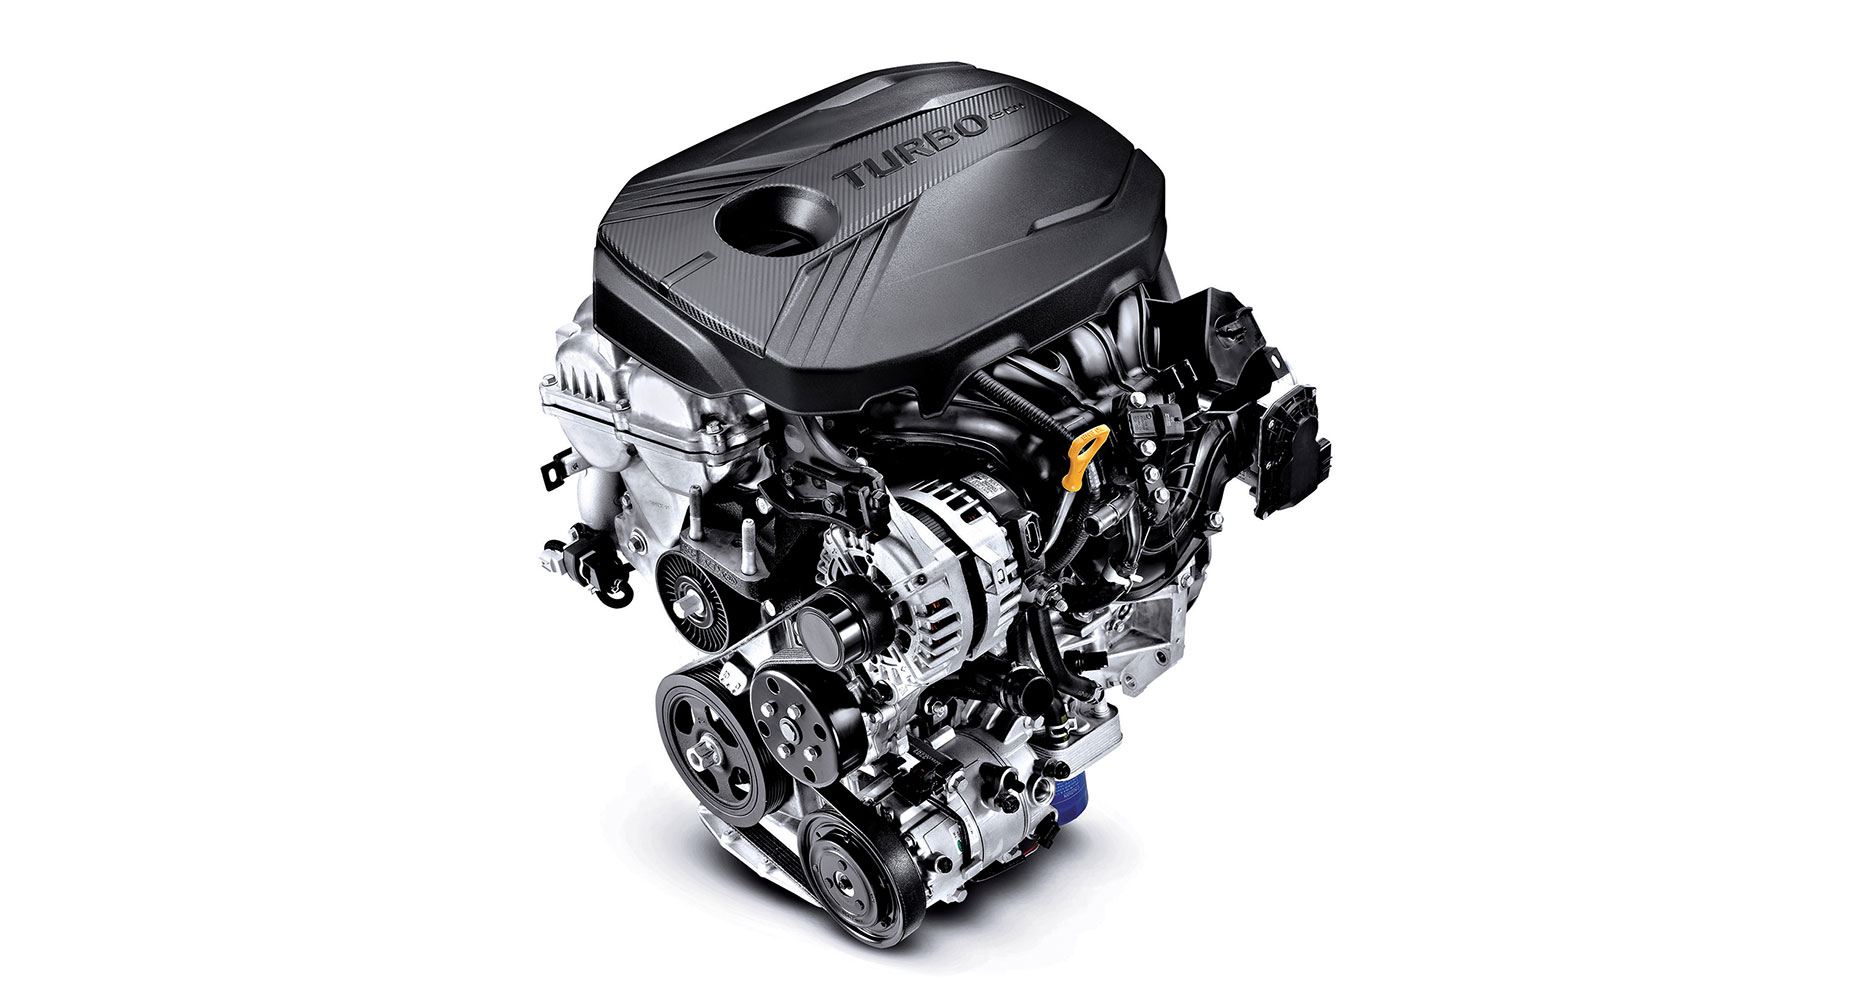 1.6L Turbocharged GDI engine